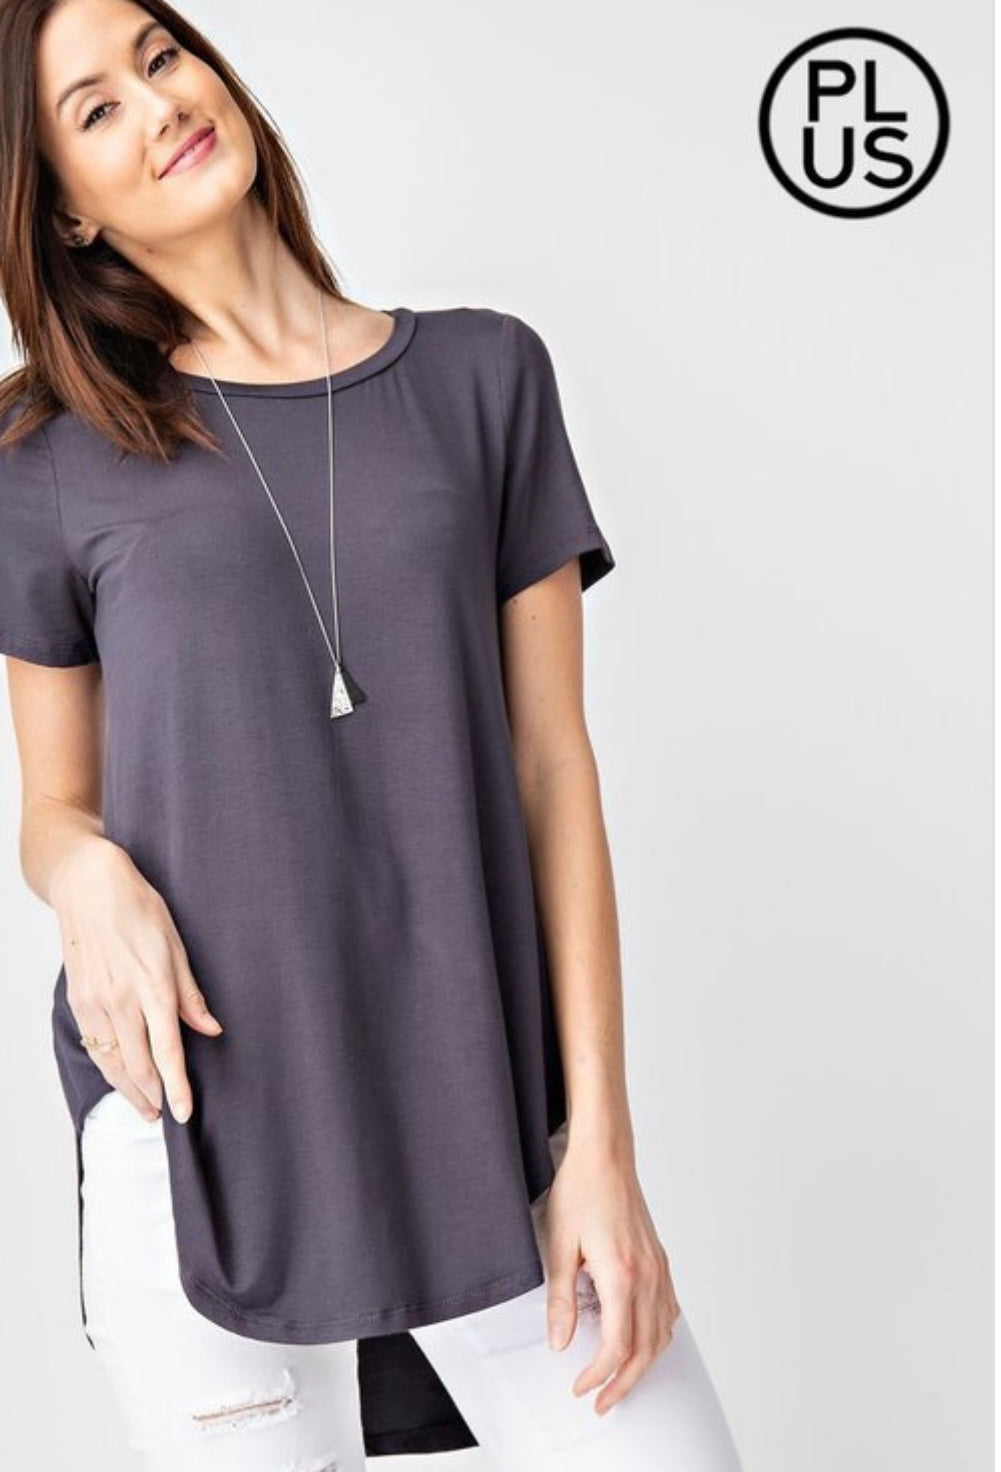 High Low Hem, Round Neck, Short Sleeve Top: Charcoal Slate